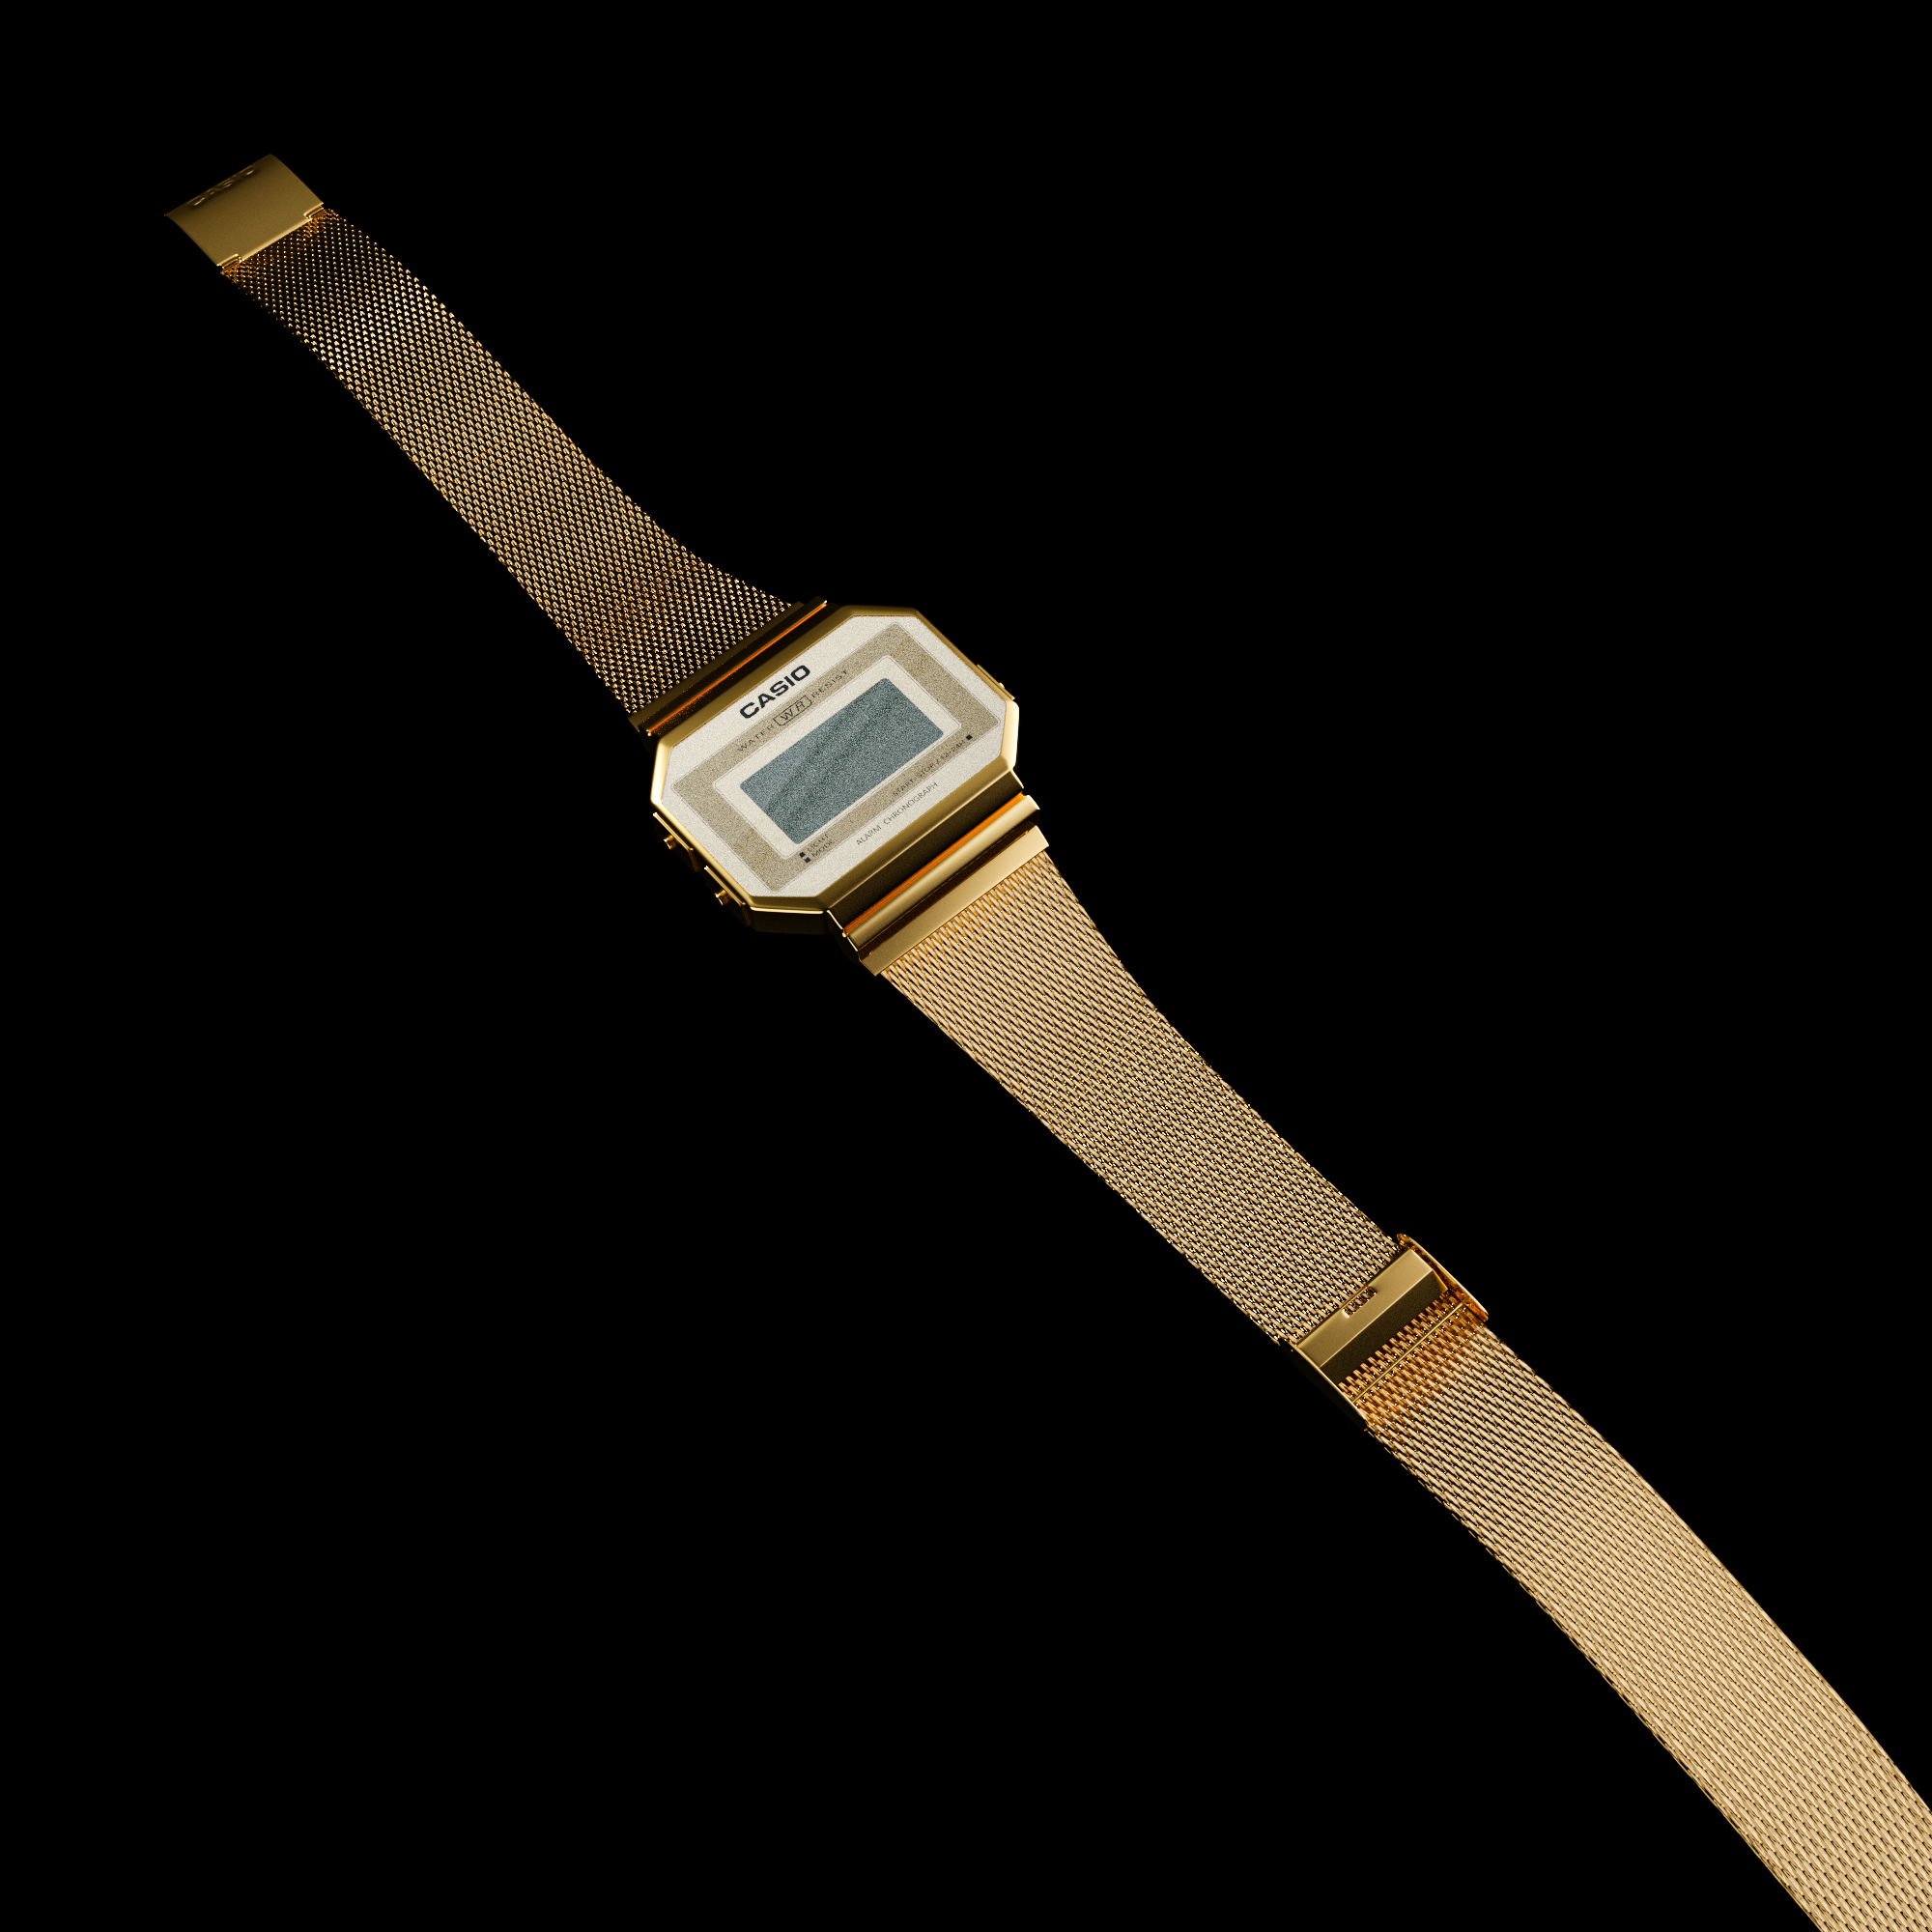 Casio Watch preview image 1